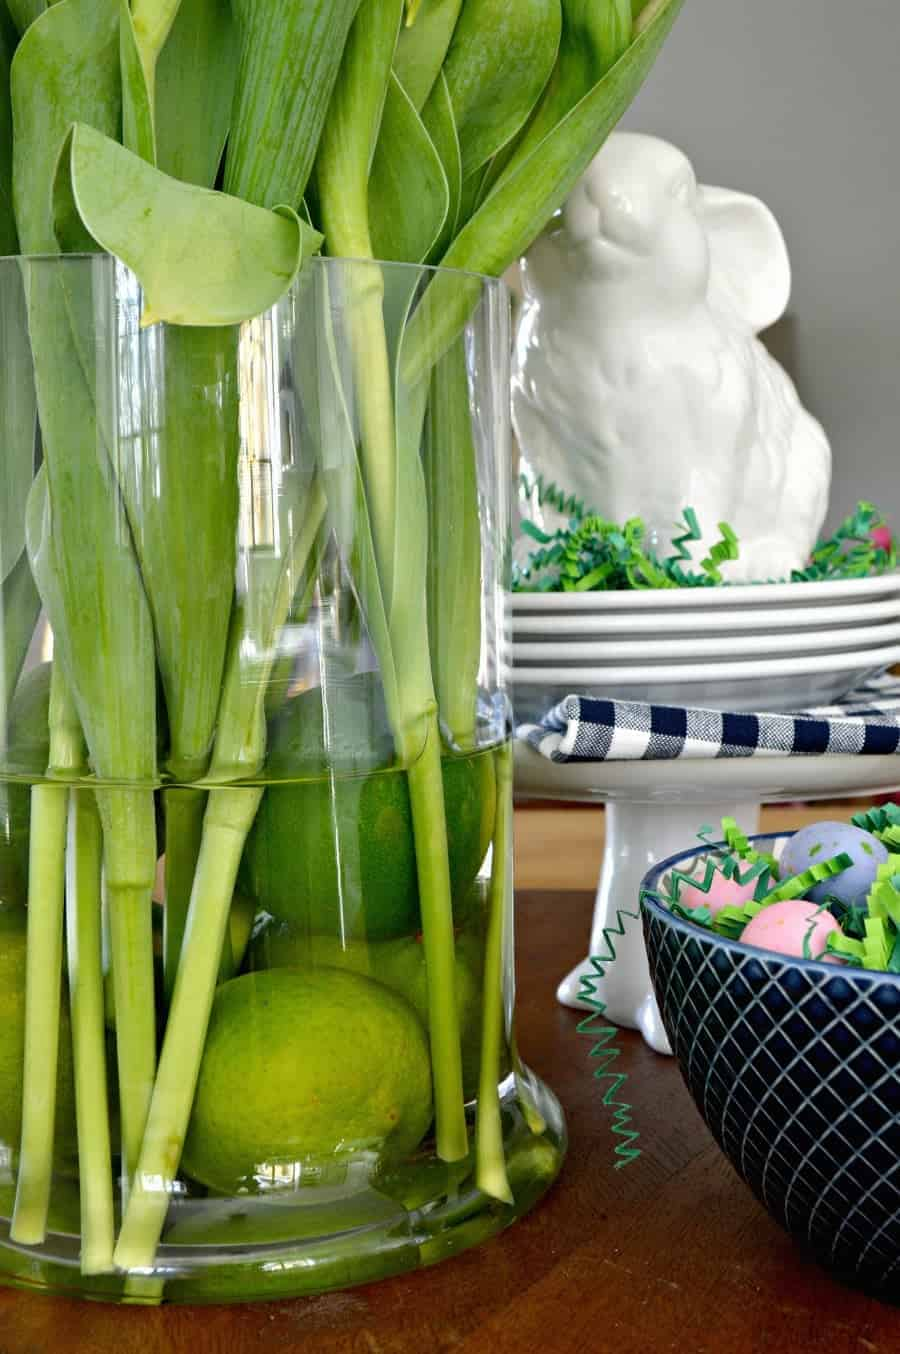 spring vignette with purple tulips in a glass vase with limes, a white bunny and a navy bowl with candy eggs